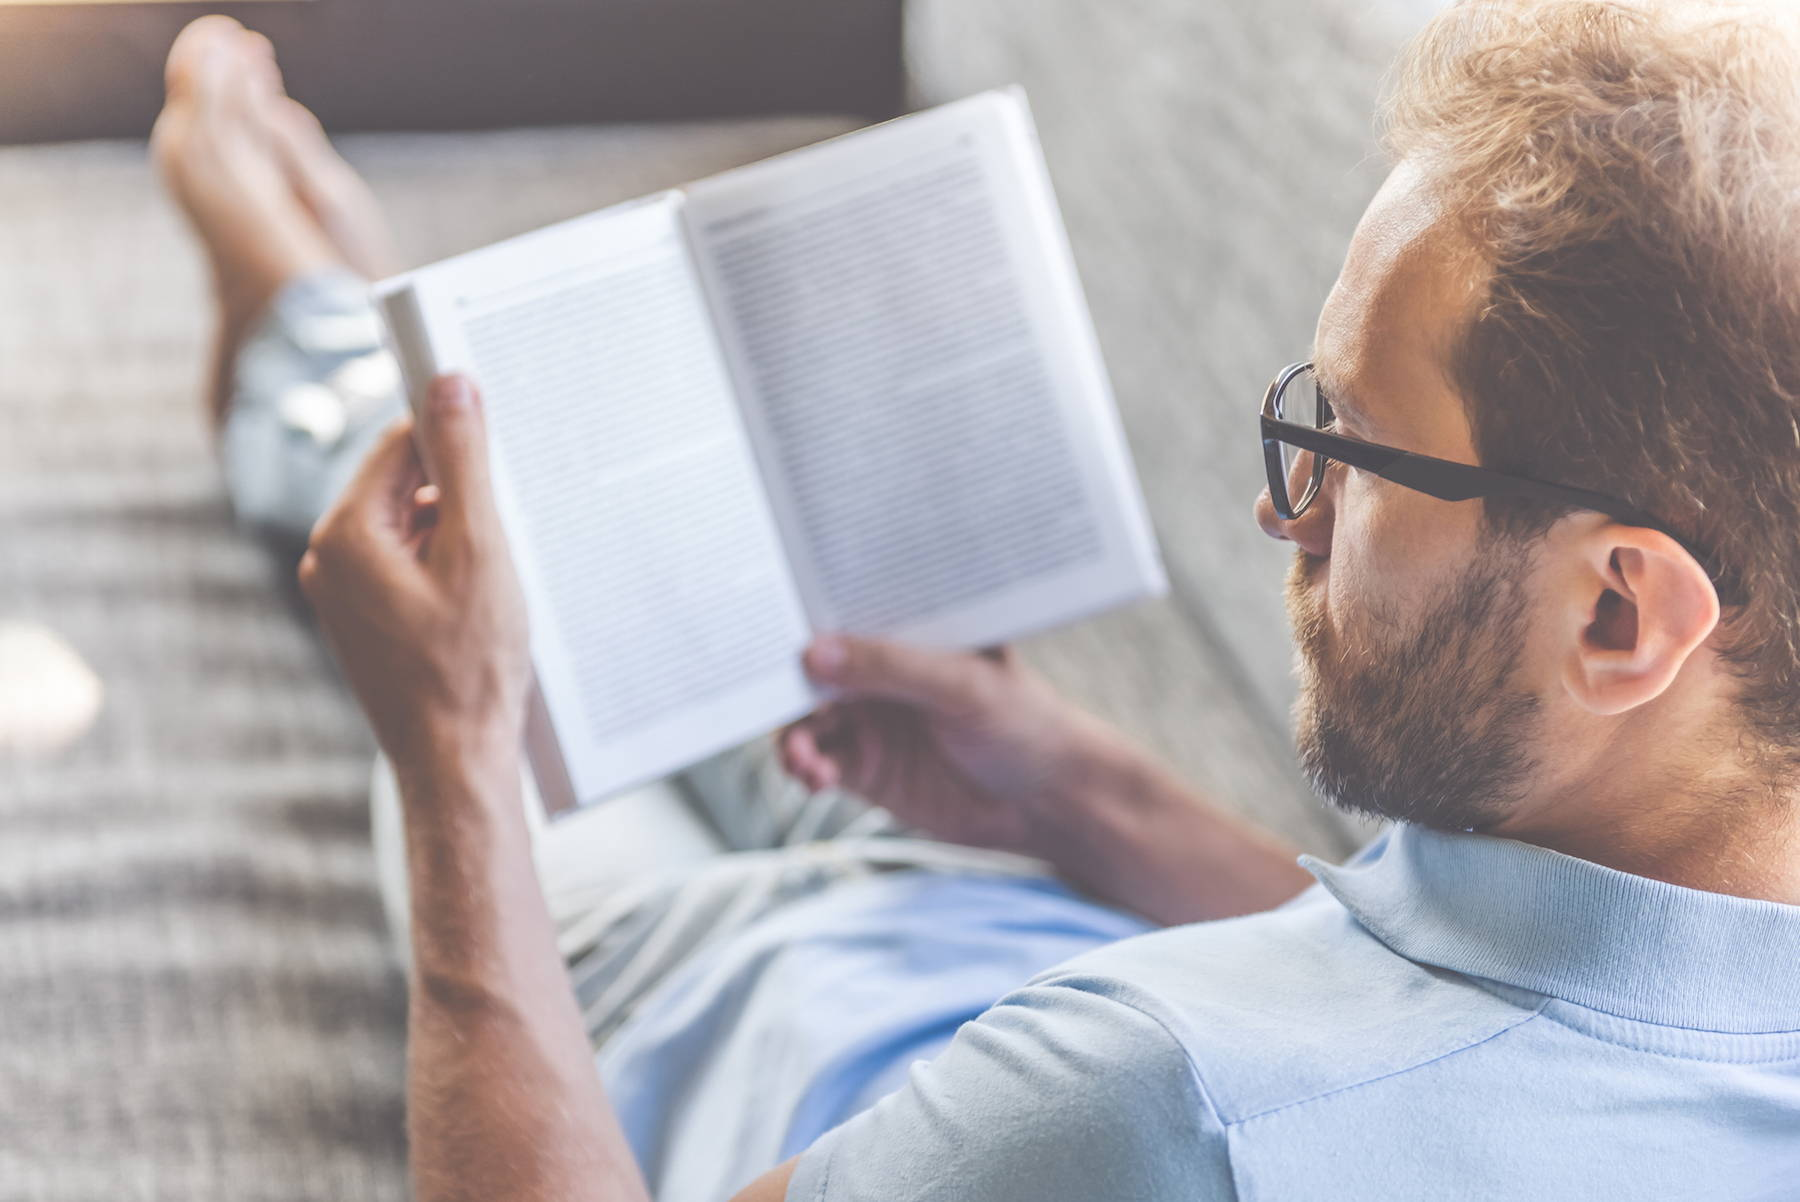 Man following tips to improve mood by relaxing with a book